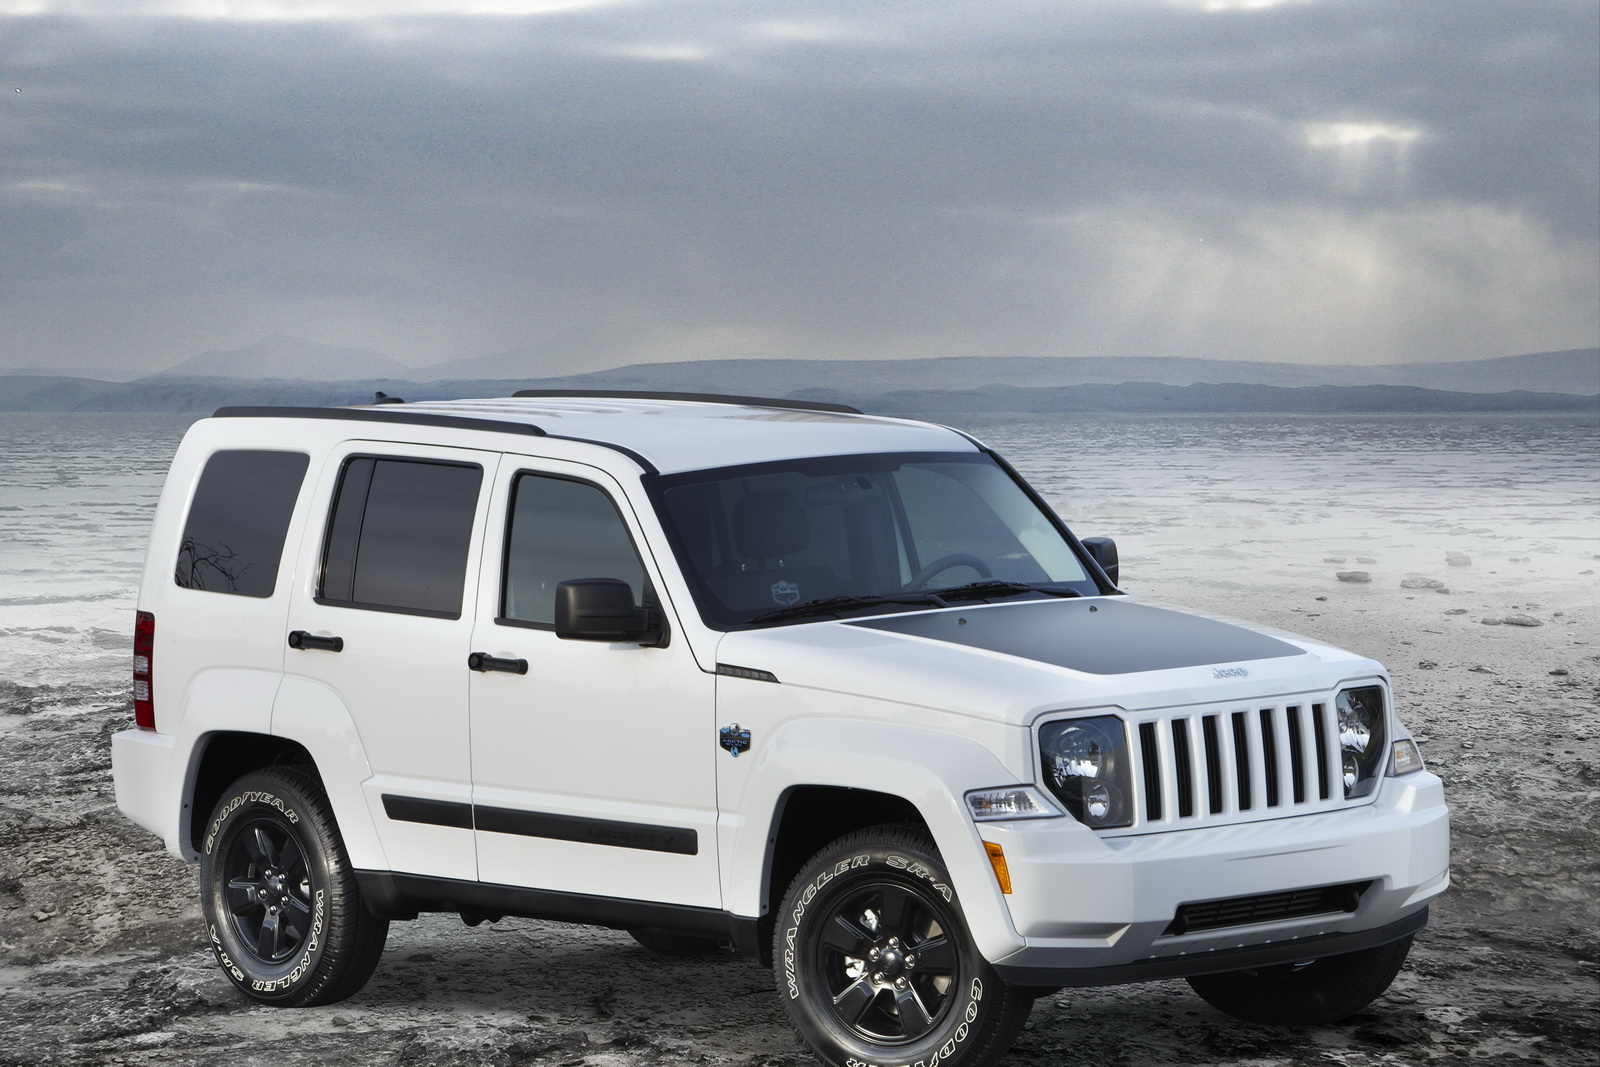 2012 Jeep Liberty SUV 2 2012 Jeep Wrangler and Liberty SUV Arctic Specials   A Review